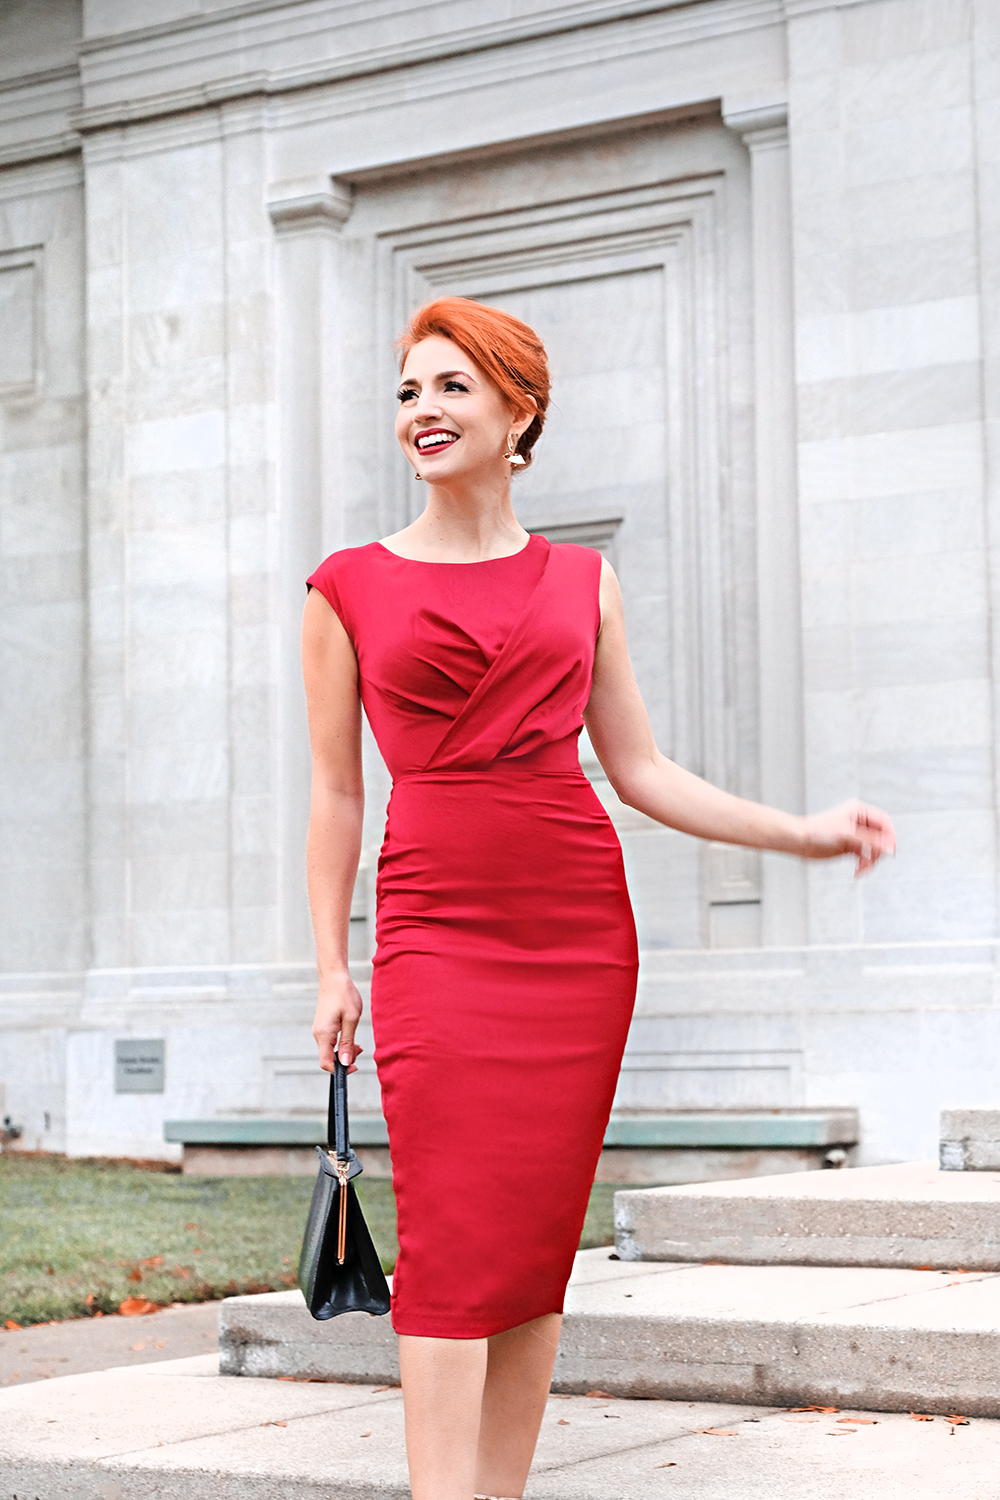 The Bria Dress - Va-va-voom! With its sophisti-sexy design and glimmering scarlet fabric, what's not to love?As seen on Catherine Kung, Author of The Southern Gloss